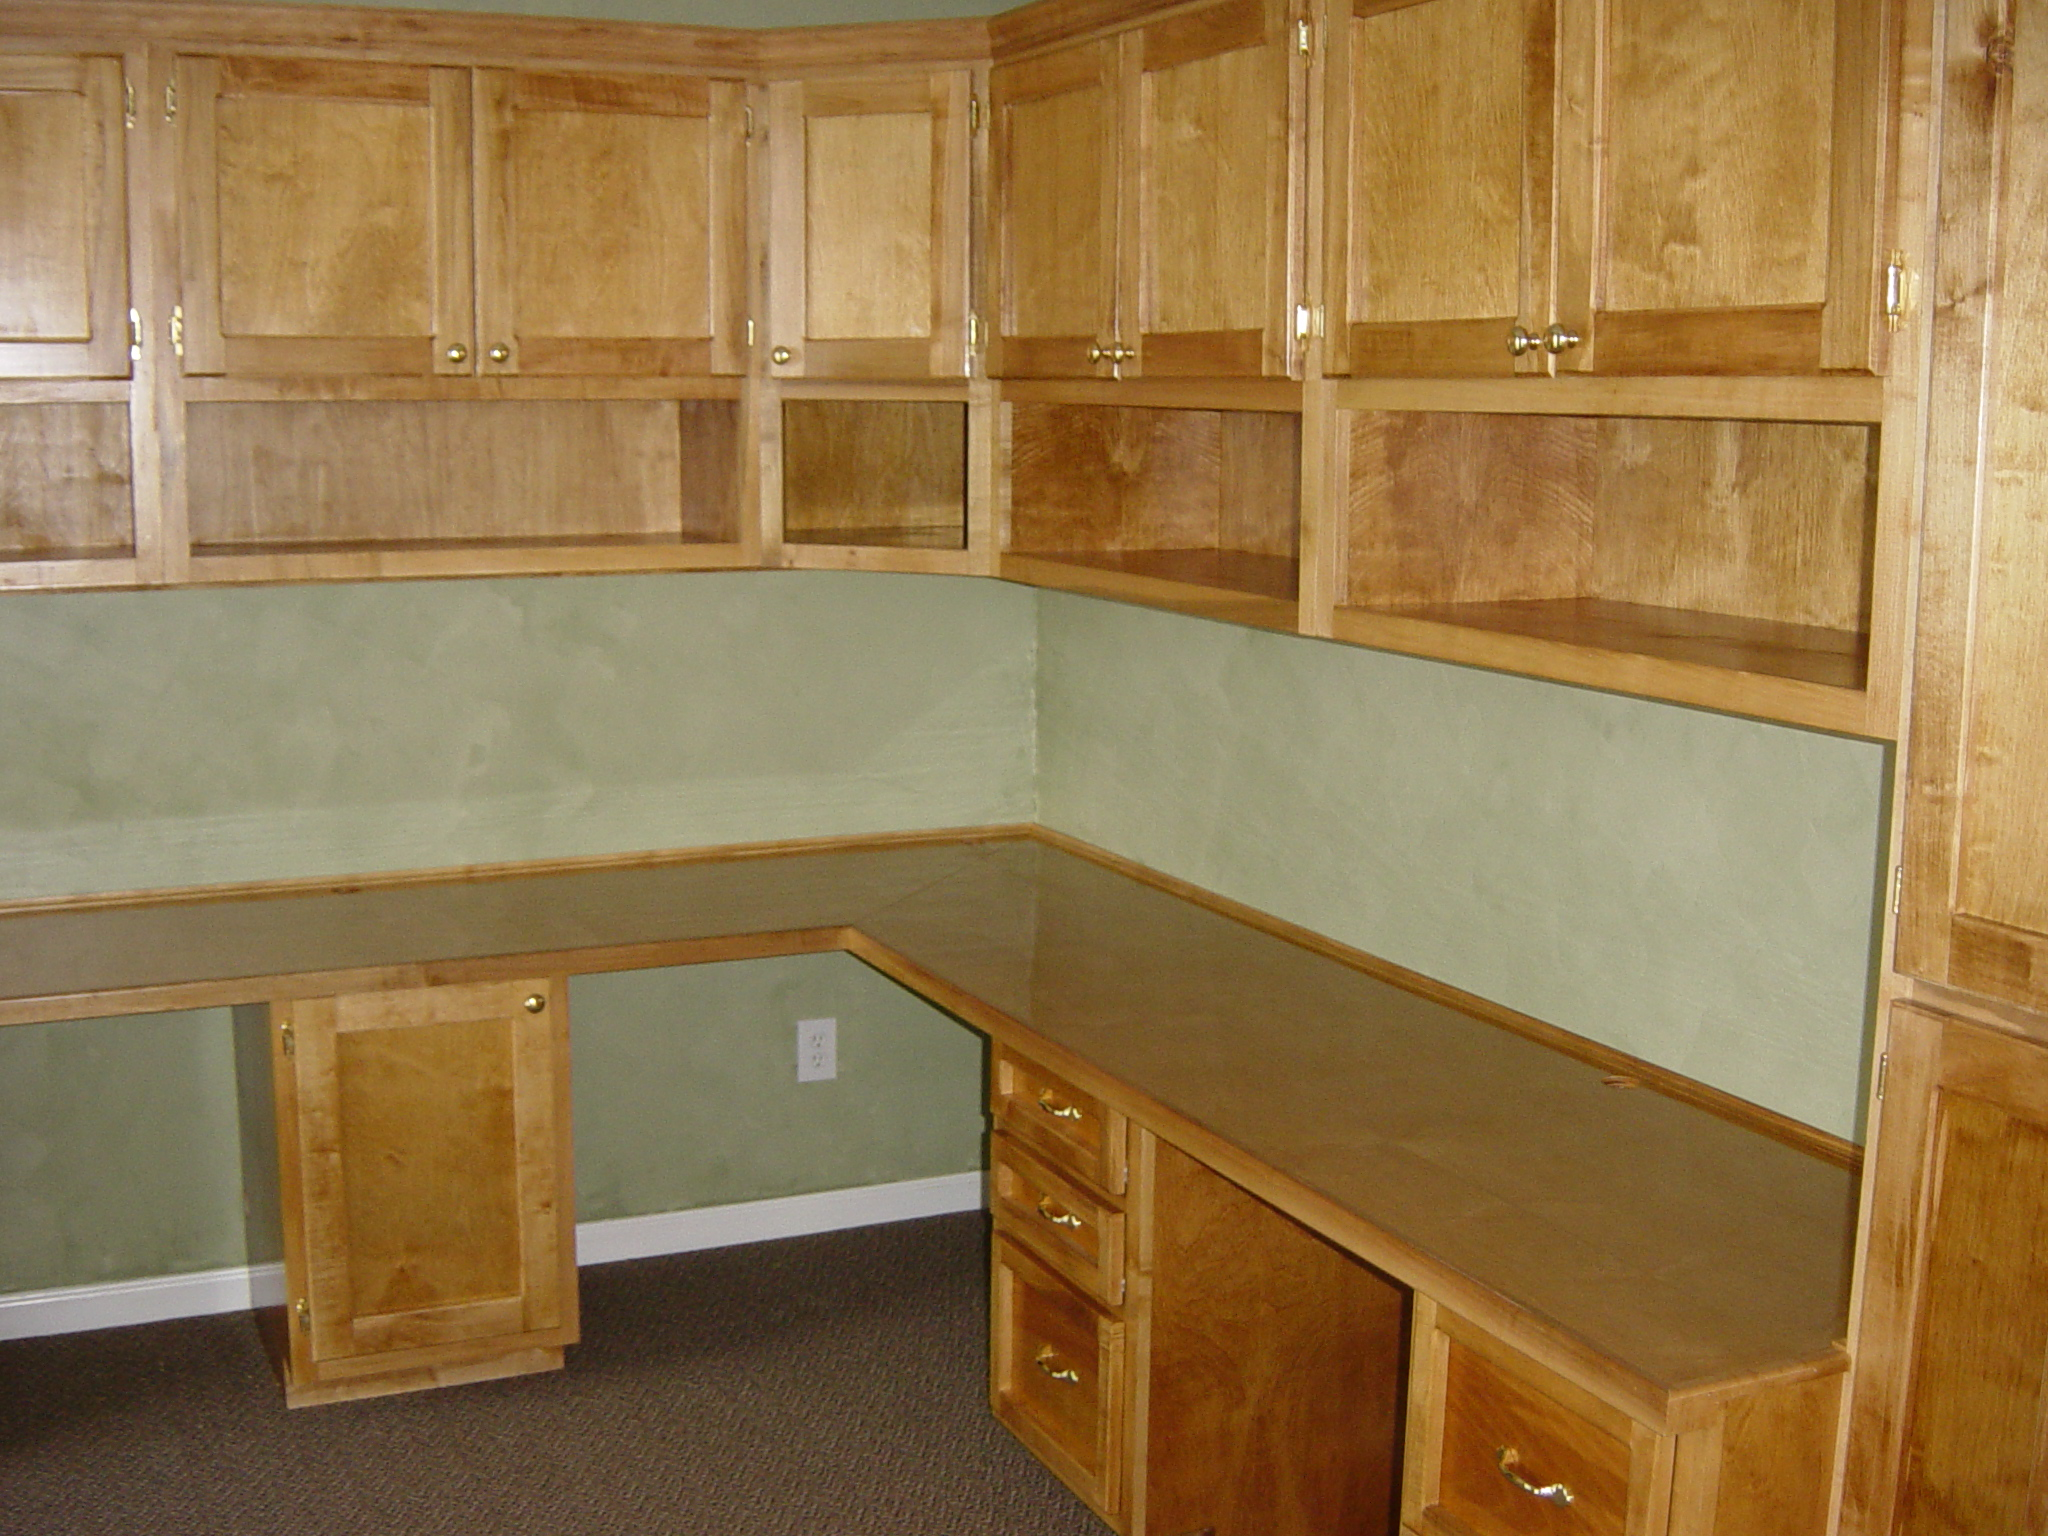 CABINET GRADE PLYWOOD USED FOR AMERICAN KITCHEN CABINETS U2026JUST SIMPLE  INTRODUCTION OF THE PLYWOOD IMPORTED FROM CHINA OR LOCAL USA PLYWOOD |